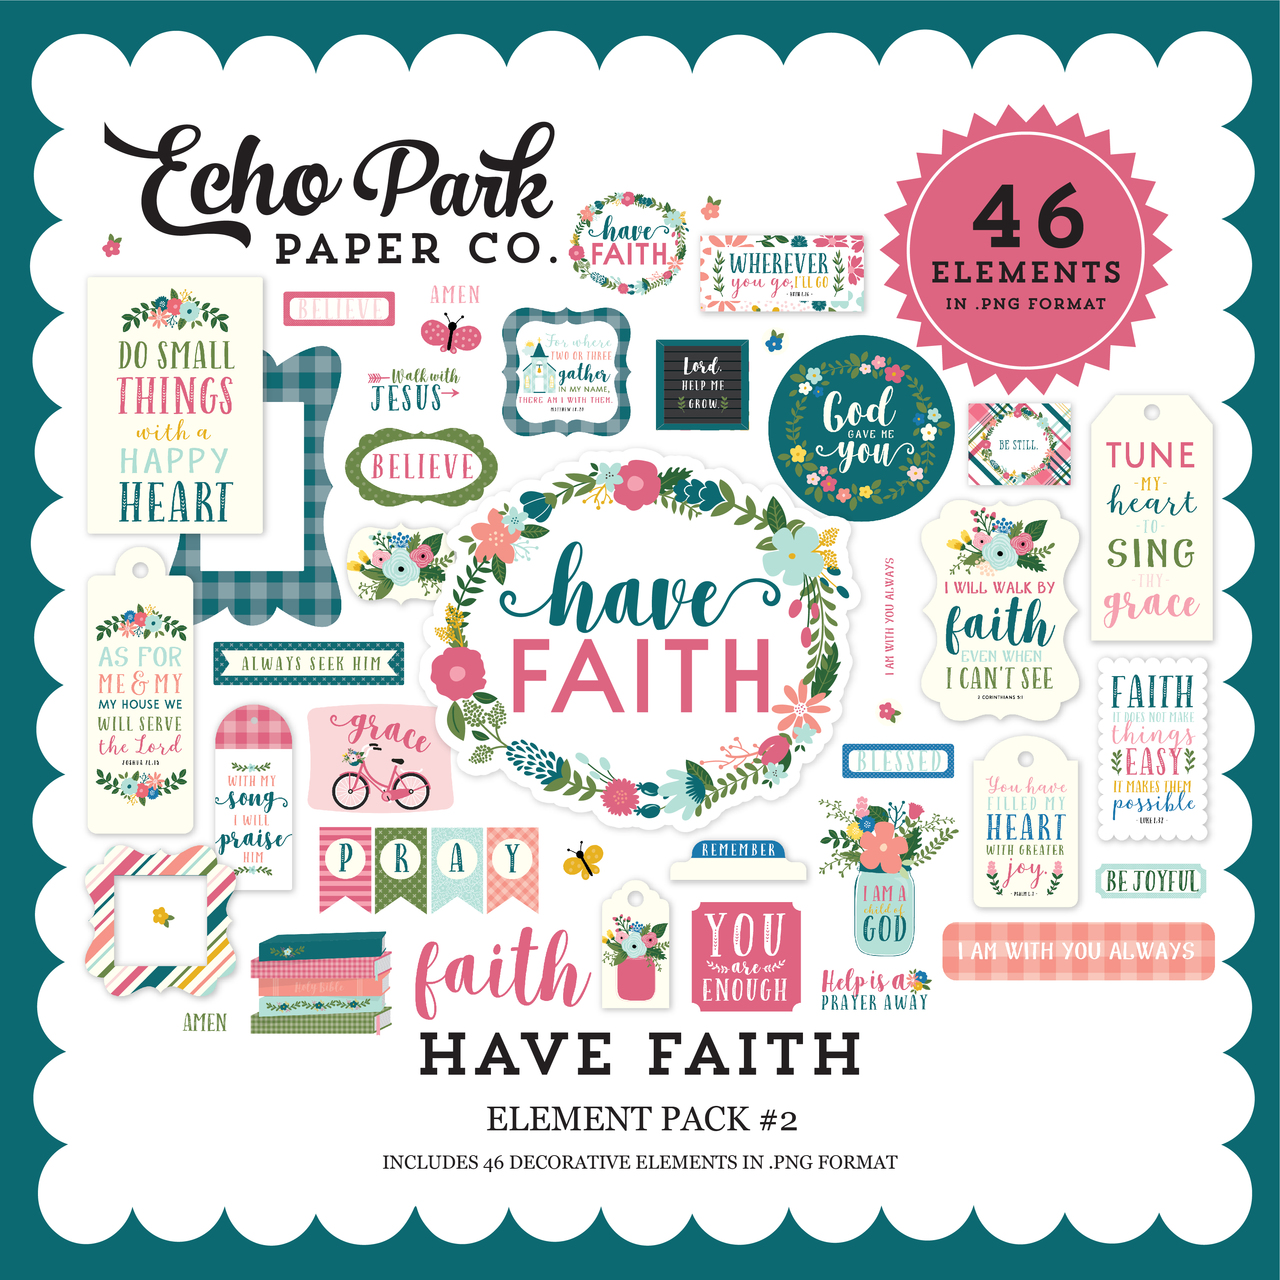 Have Faith Element Pack #2